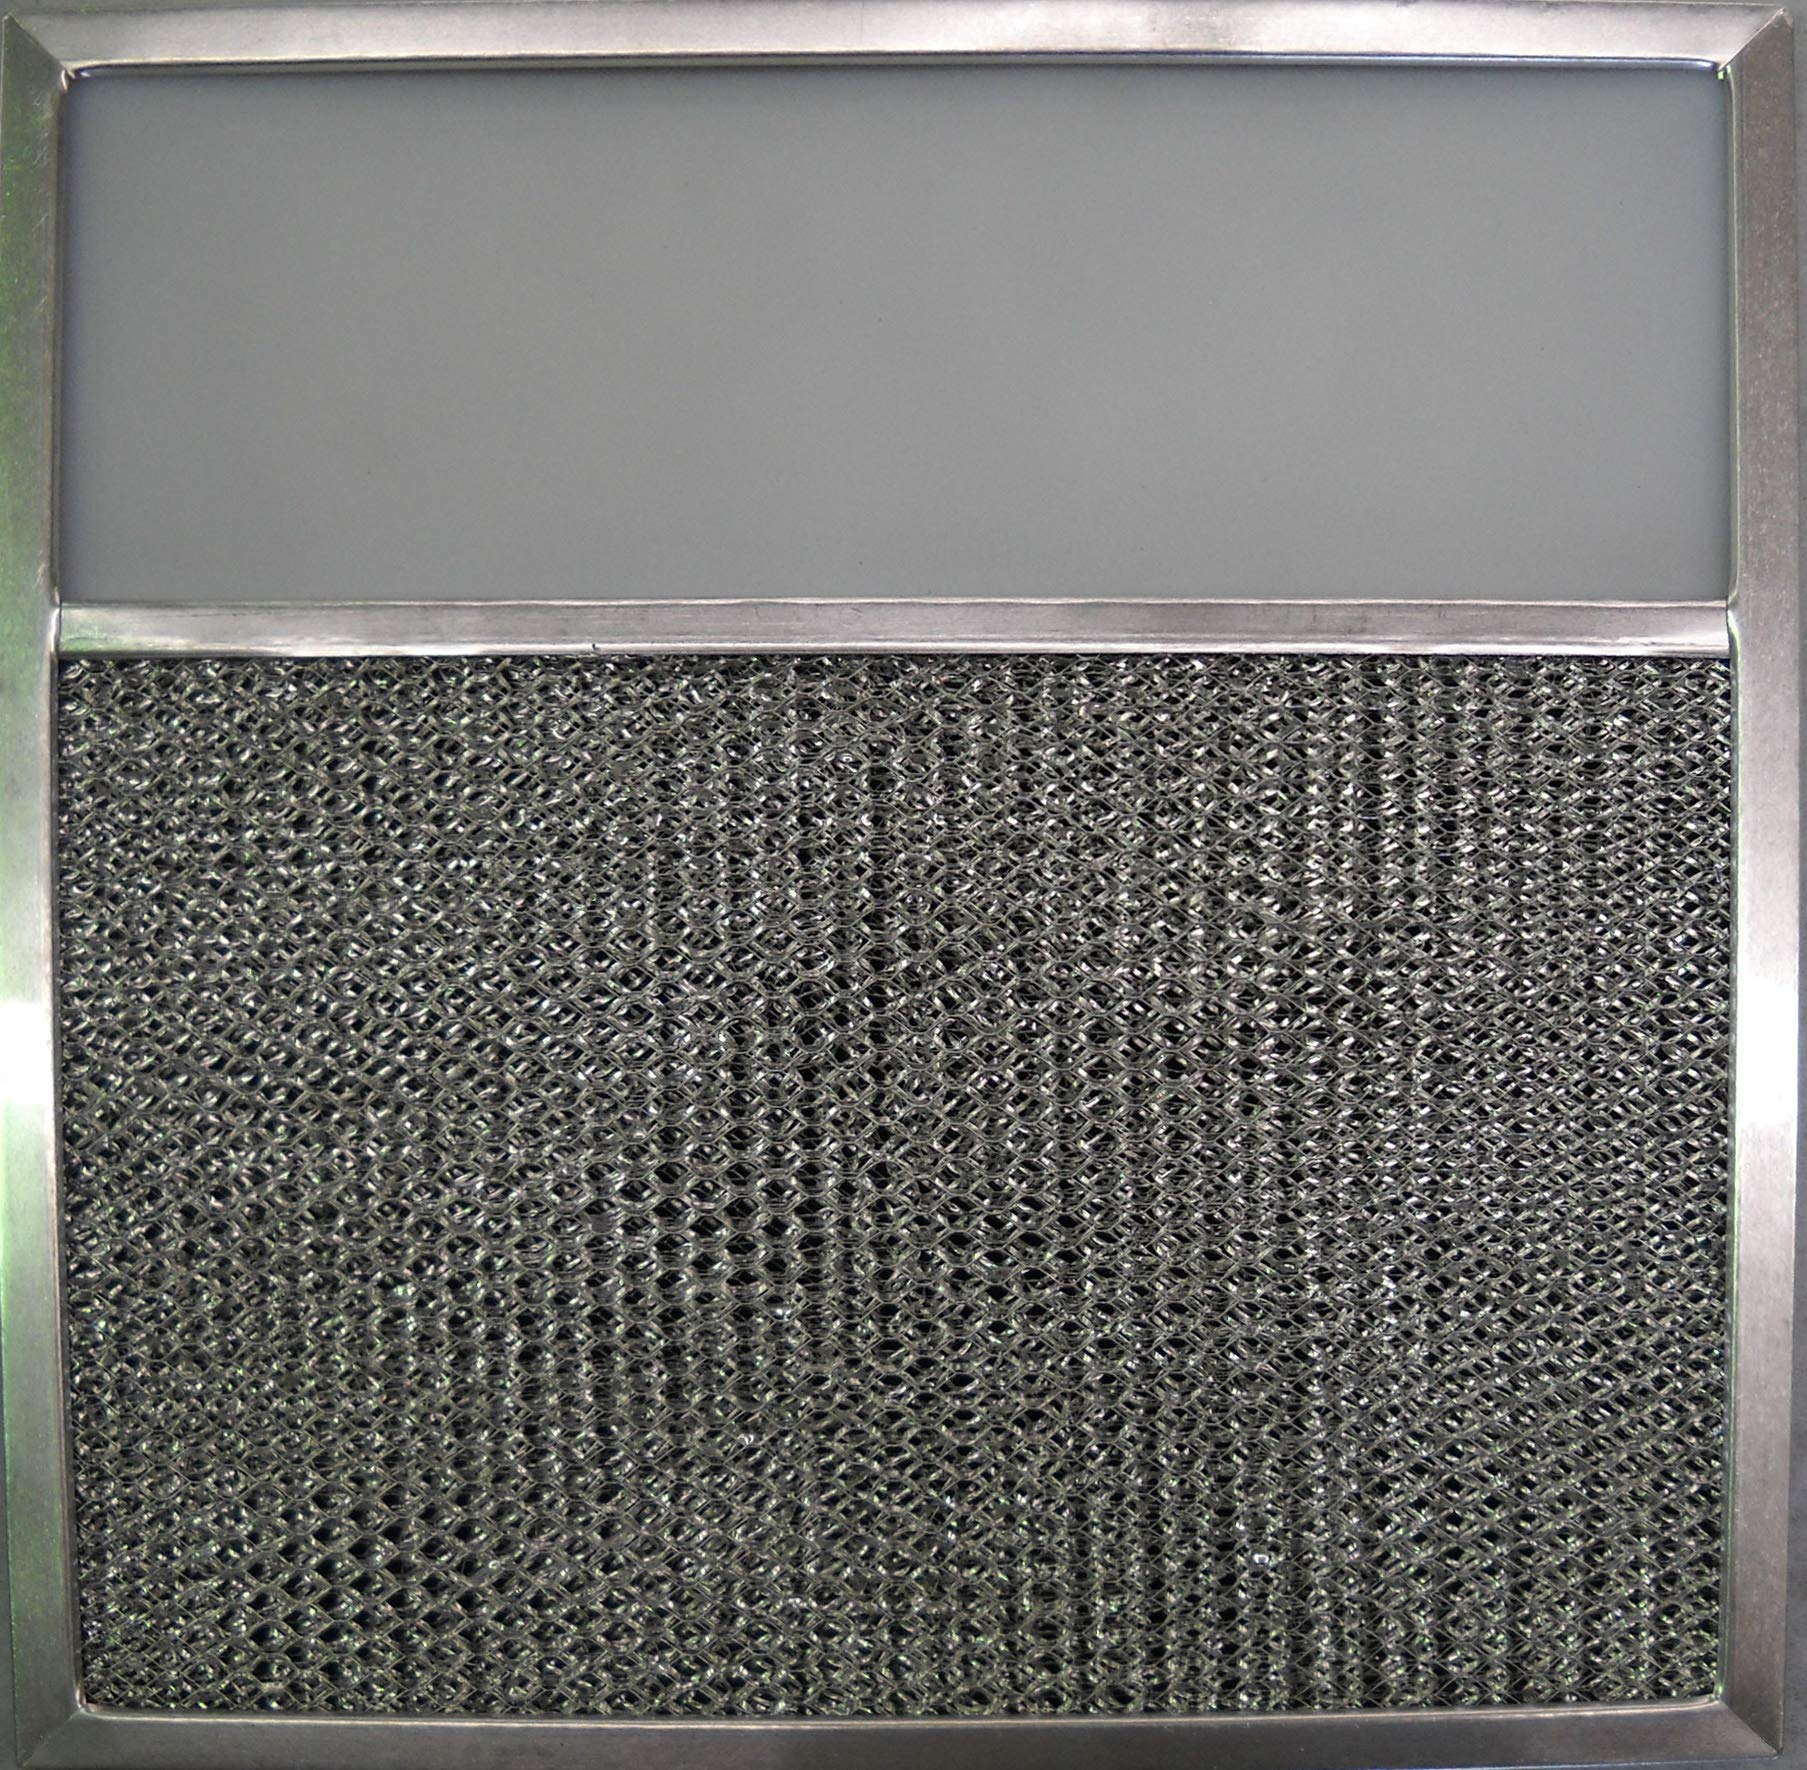 Replacement Oven Range Filter Compatible with Broan 99010194, BP1, Nutone 21883 000, and AMFCO RLF11